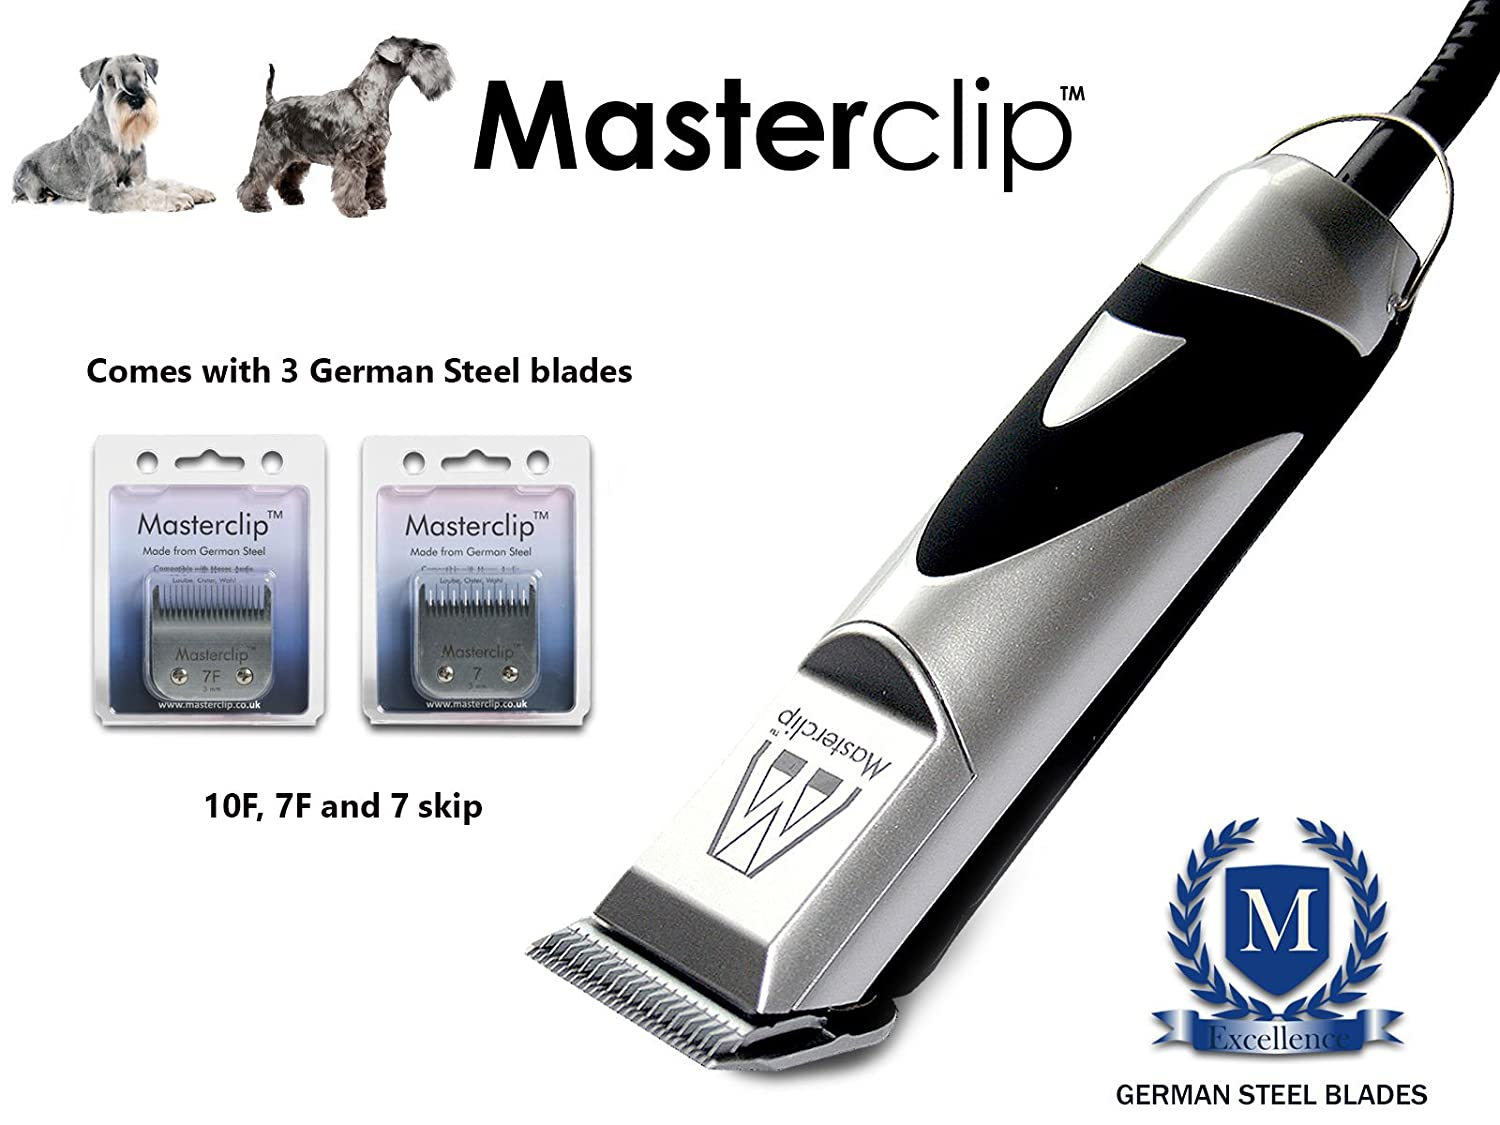 Masterclip Miniature Standard Schnauzer Professional Dog Clippers Set Pet Grooming Clipper Trimmer Supplies